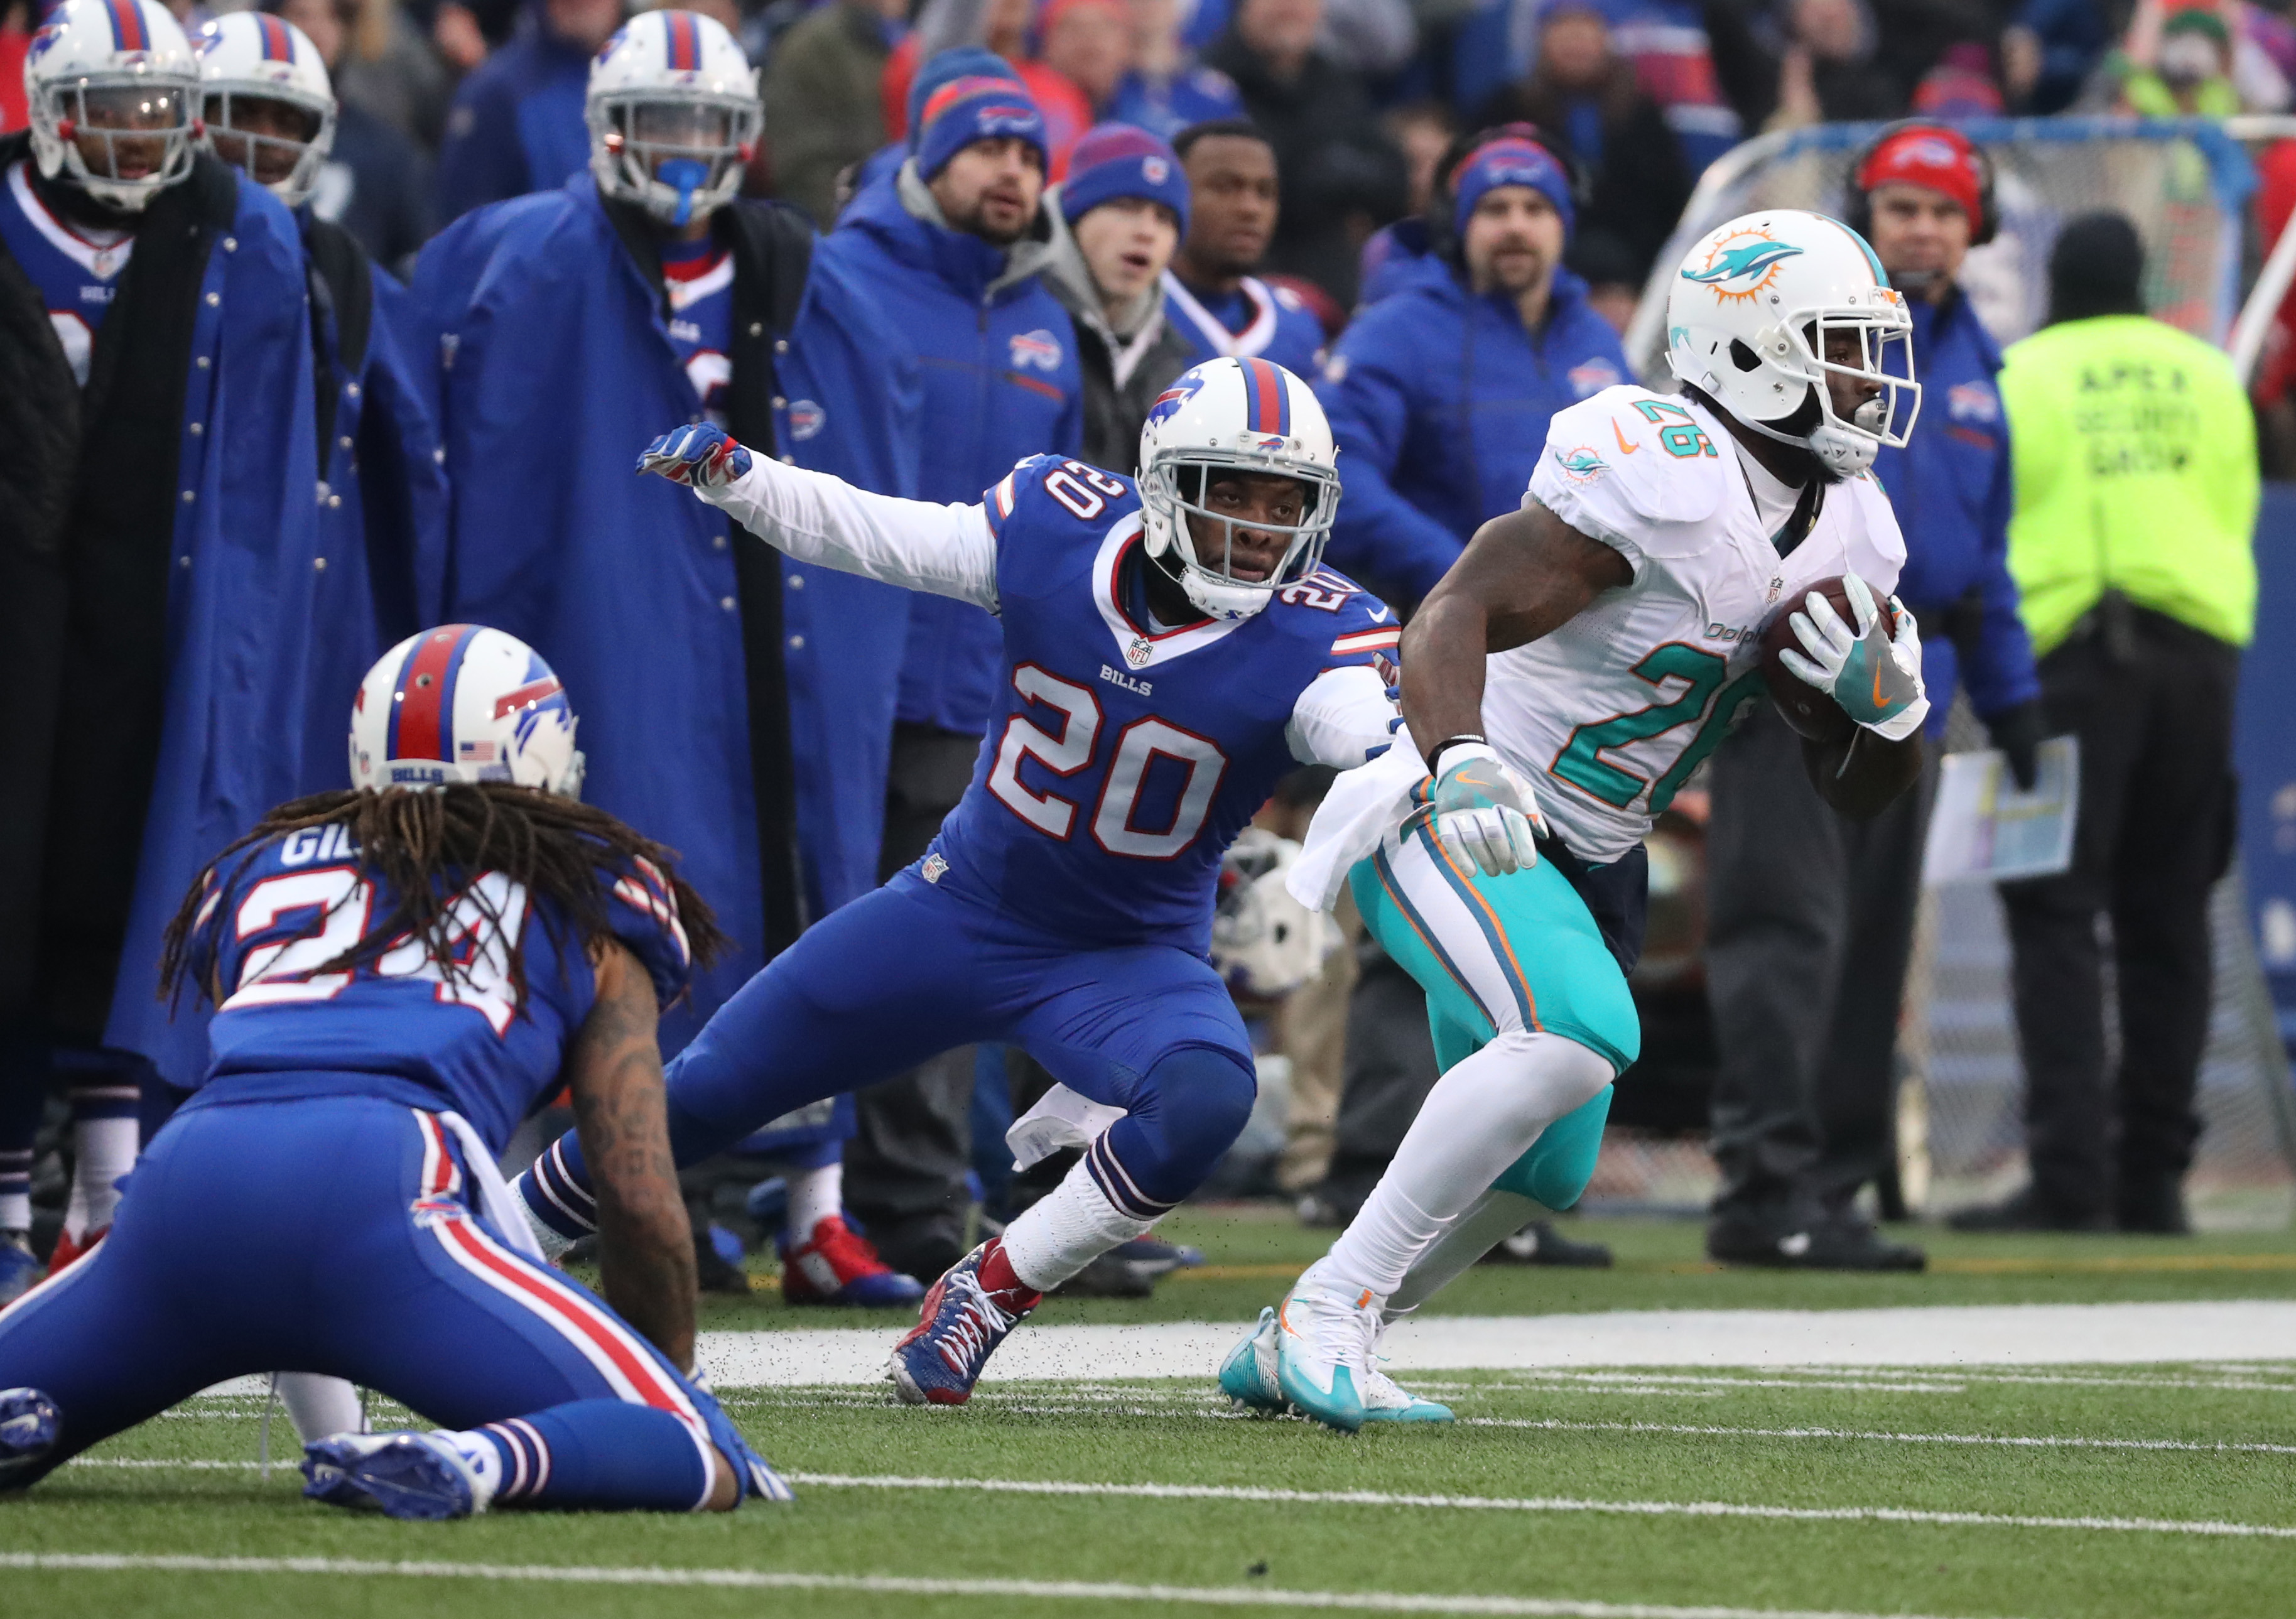 Miami Dolphins running back Damien Williams runs for a first down against Stephon Gilmore (24) and Corey Graham (20). (James P. McCoy/Buffalo News)